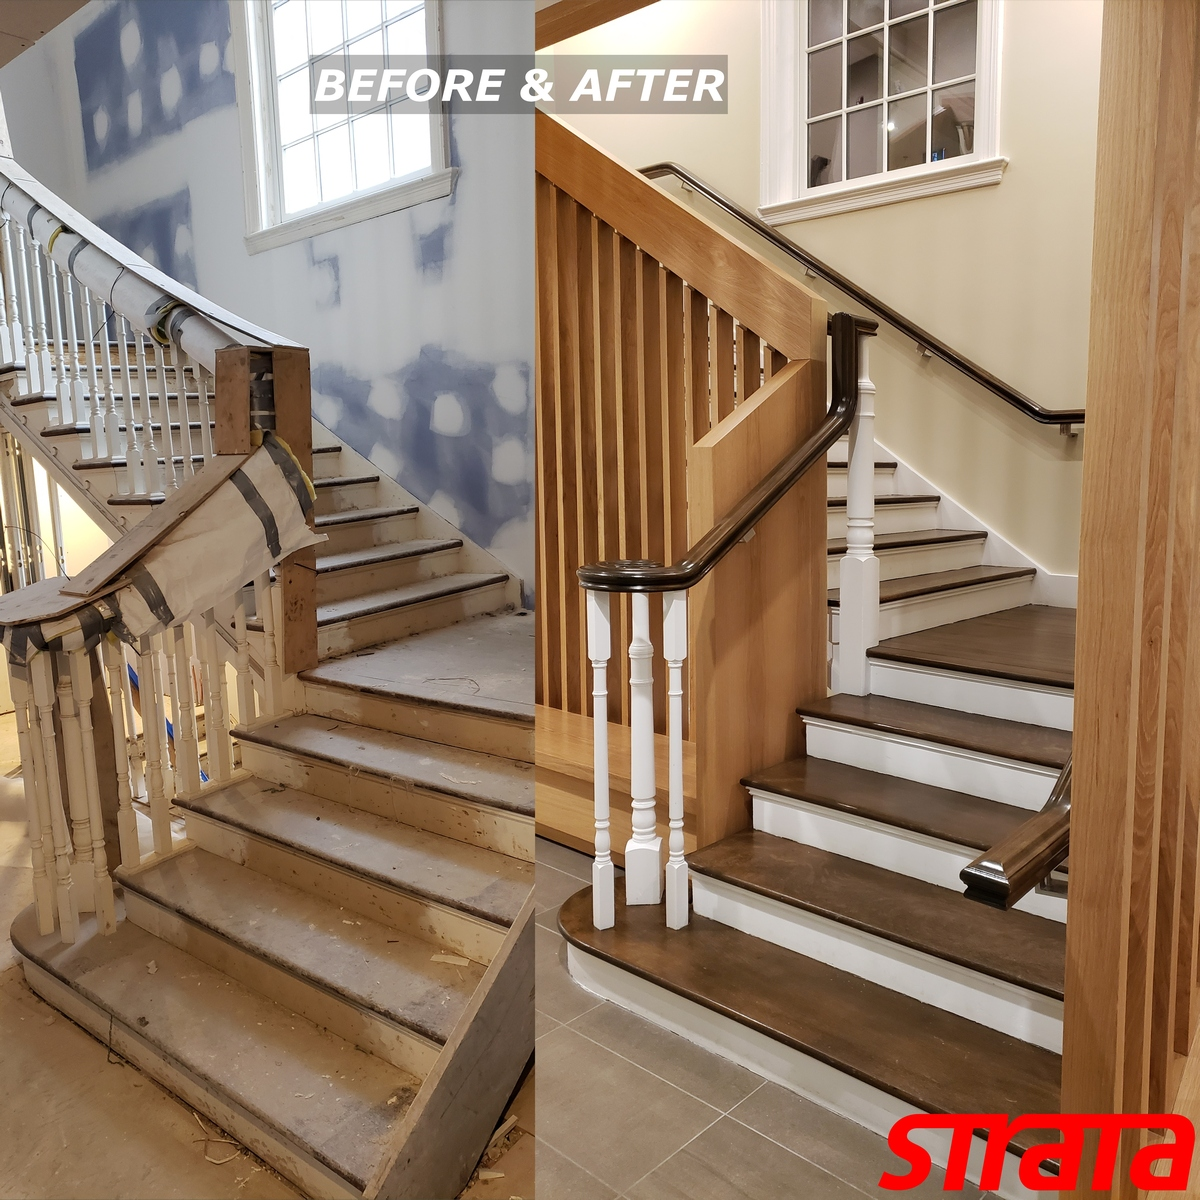 Before and After - Historical Building Heritage Property - Dust Free Stair Refinishing - Railing Renovation - Toronto, Vaughan, Downtown Toronto, Downtown, North York